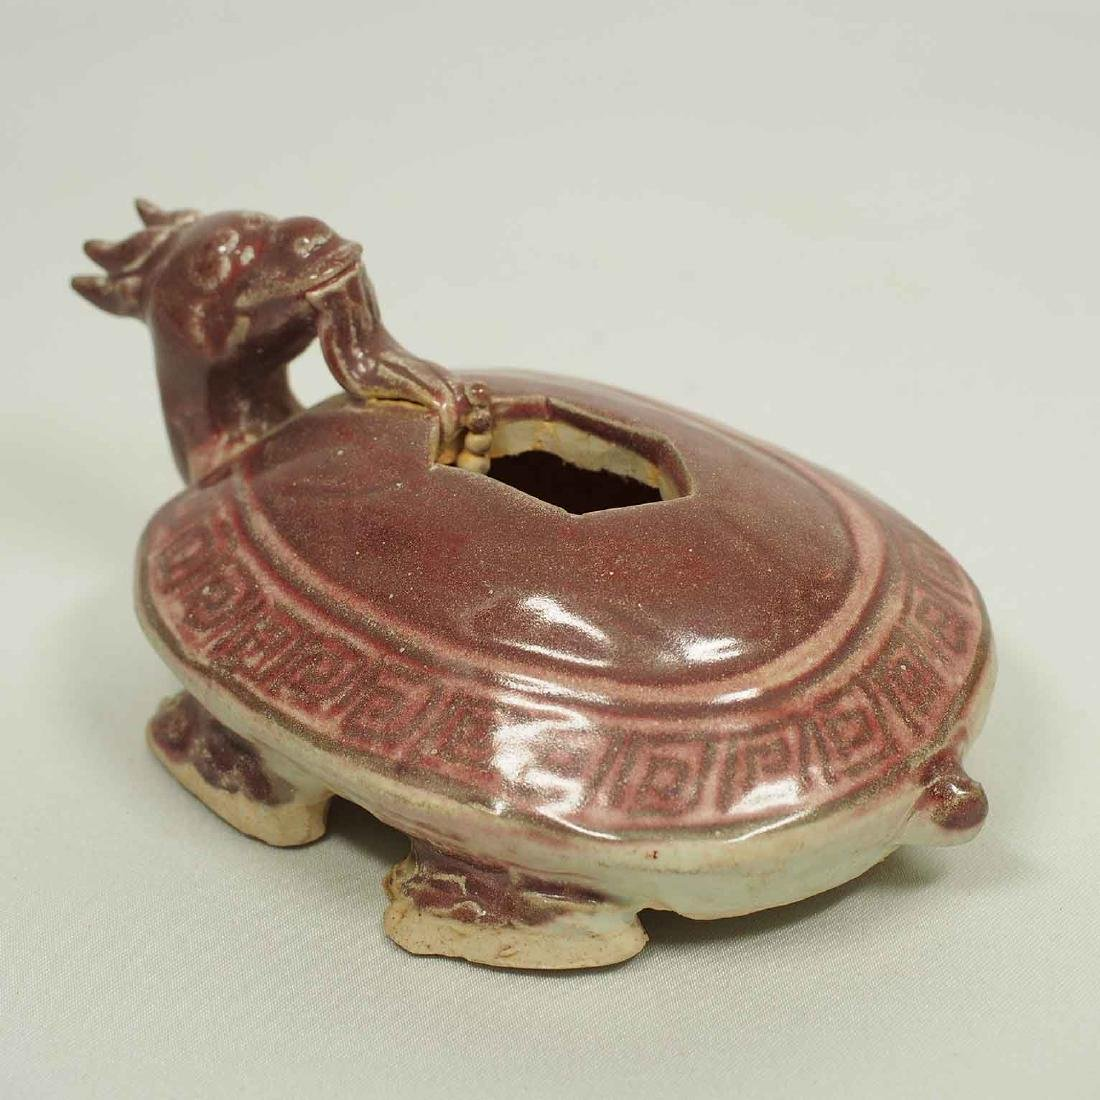 Scholar's Dragon-Turtle Form Waterpot, Ming Dynasty